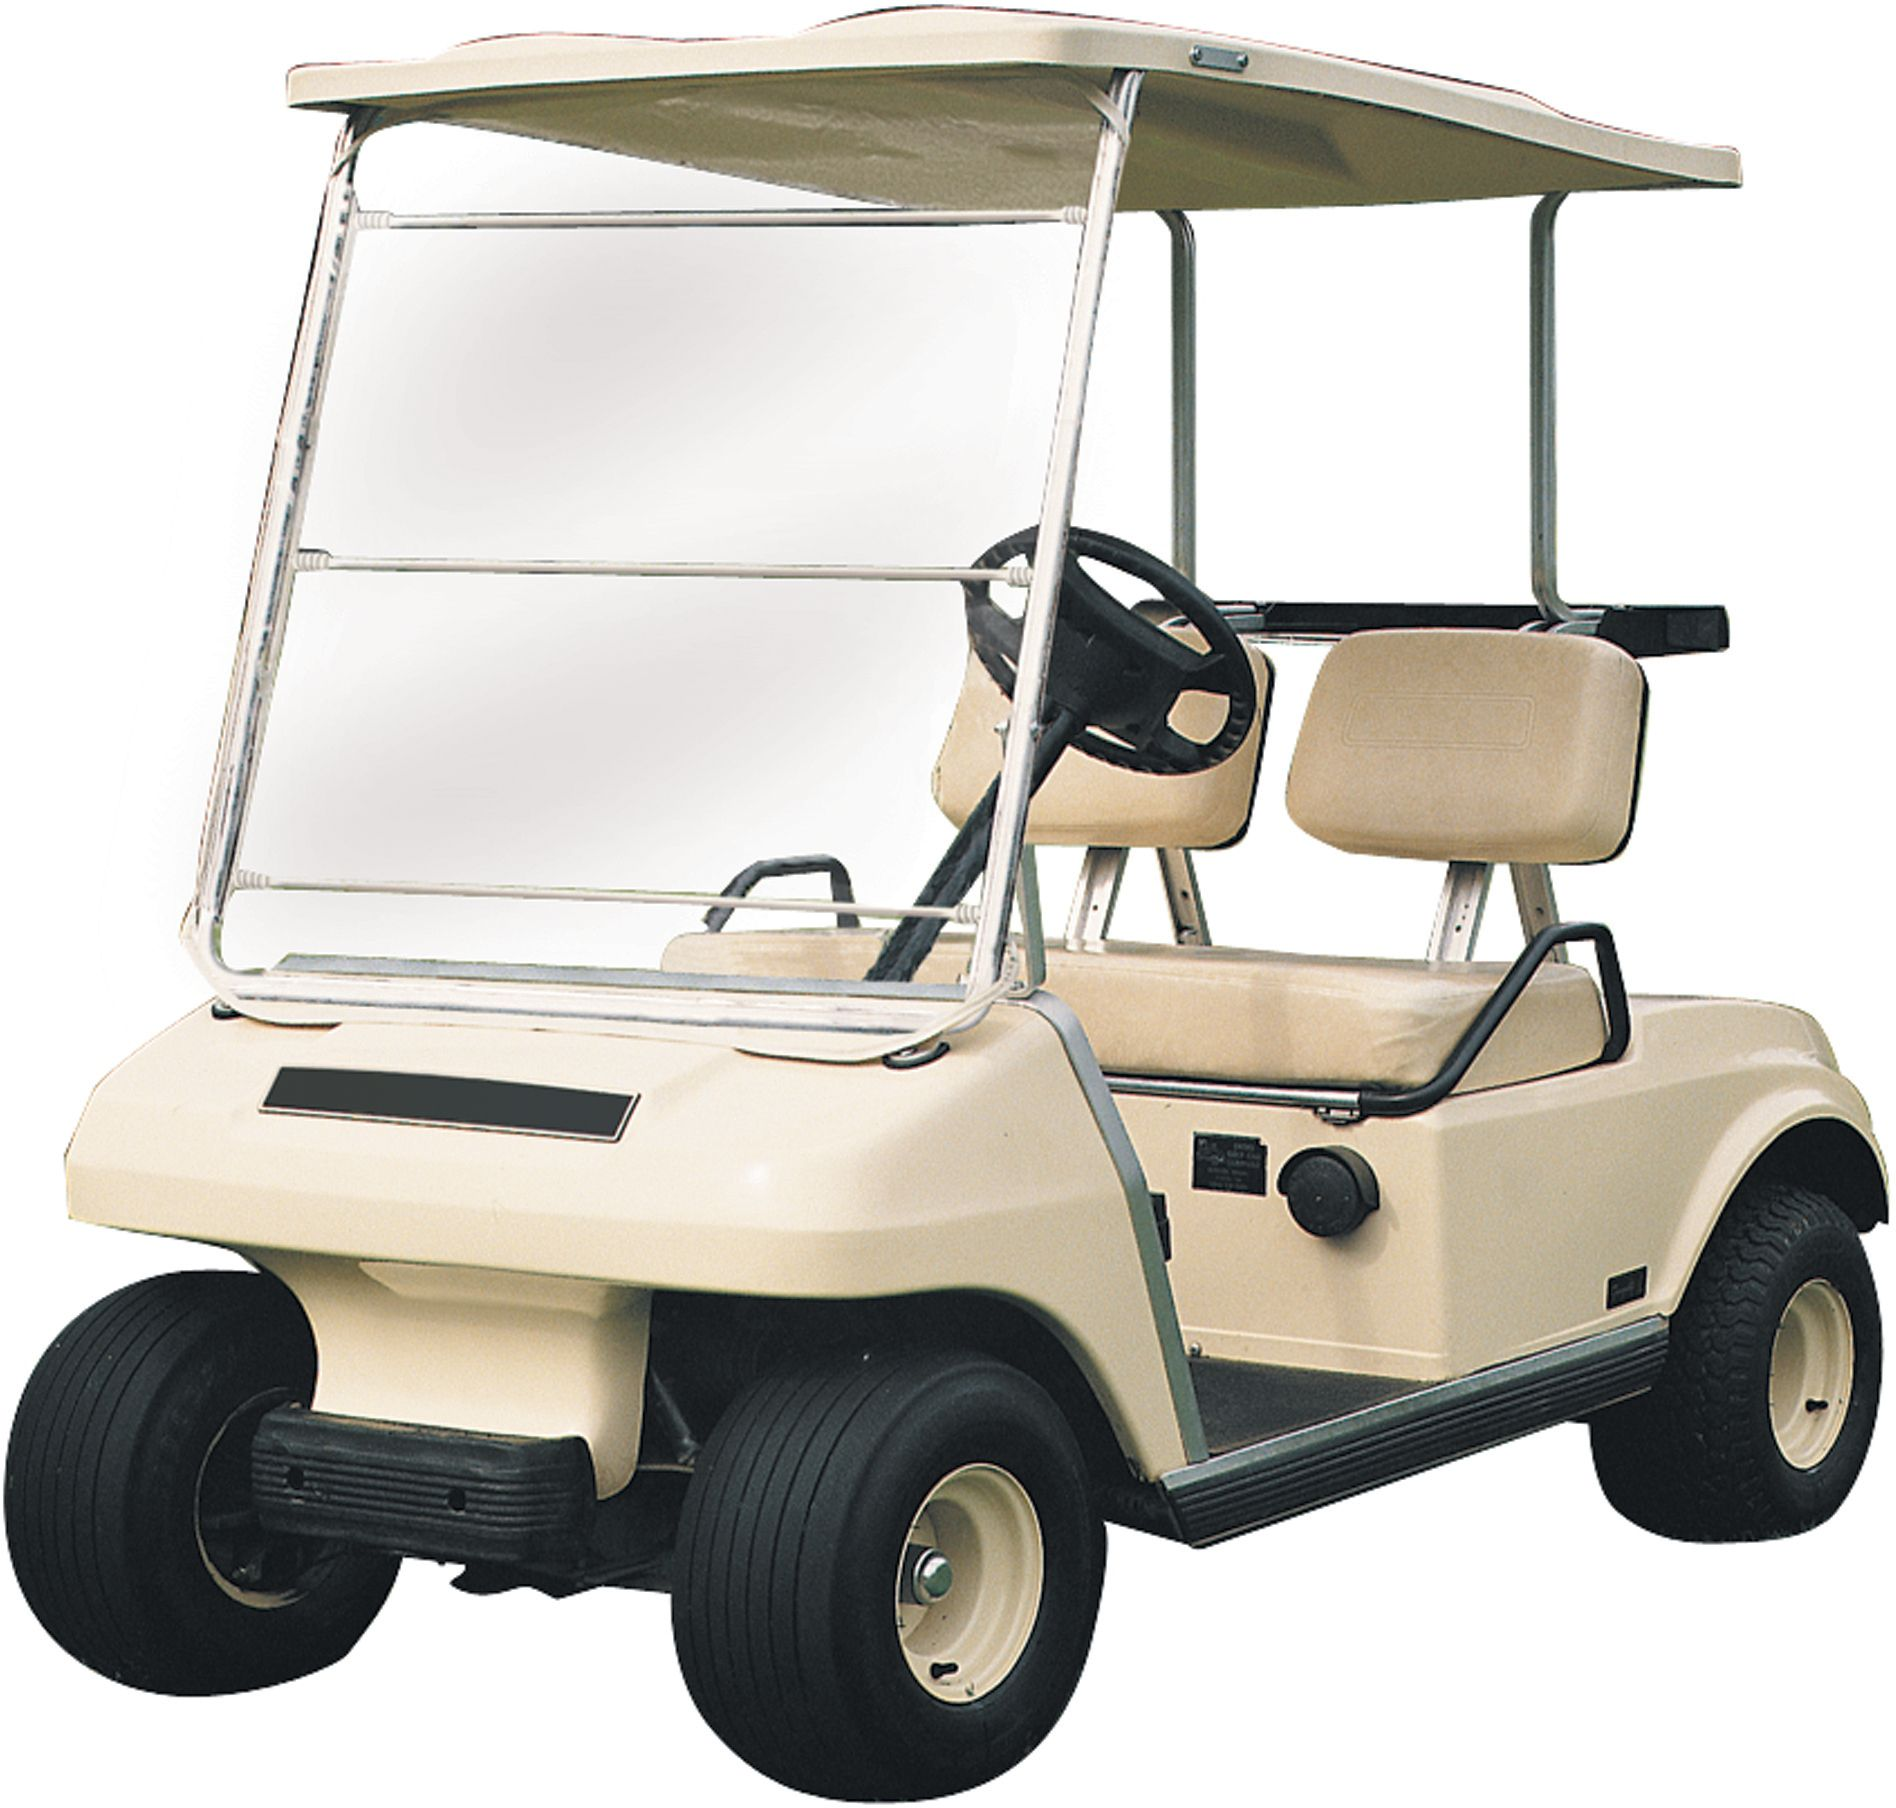 golf cort, golf carts with guns, golf store sale, golf buggy, hot tub sale, bus sale, carport sale, on golf carts maine sale